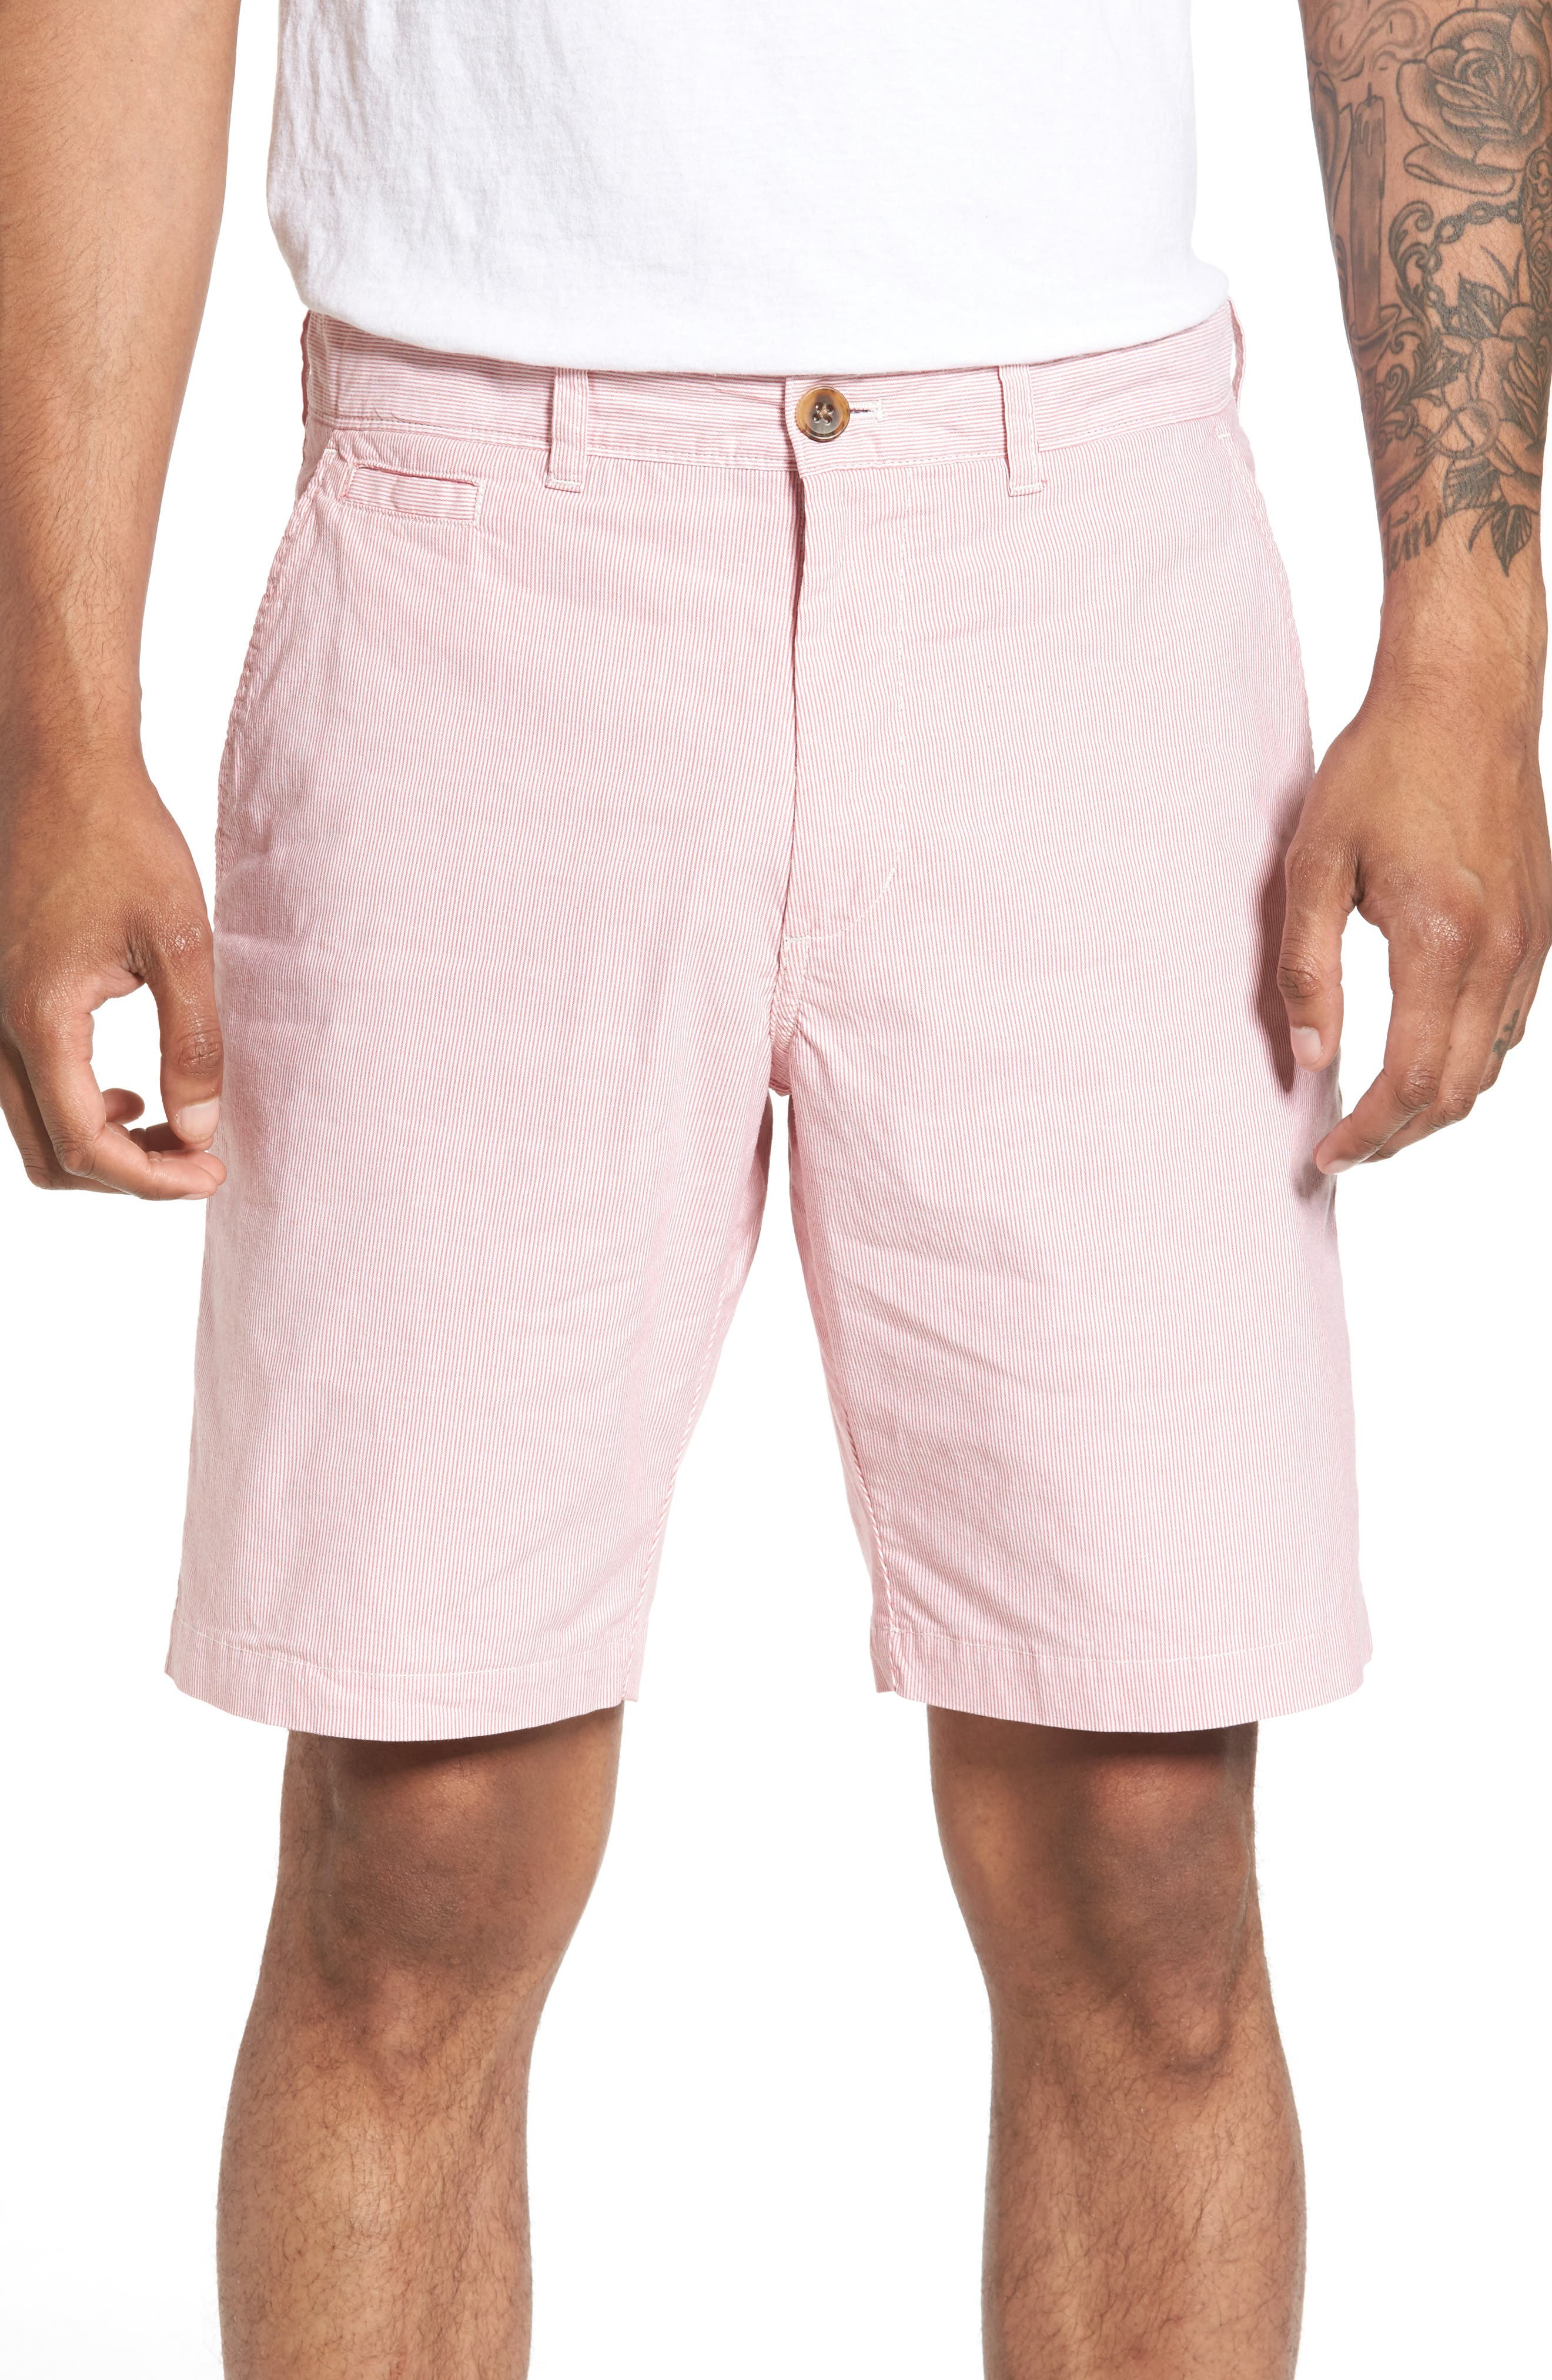 Nordstrom Men's Shop Seersucker Shorts